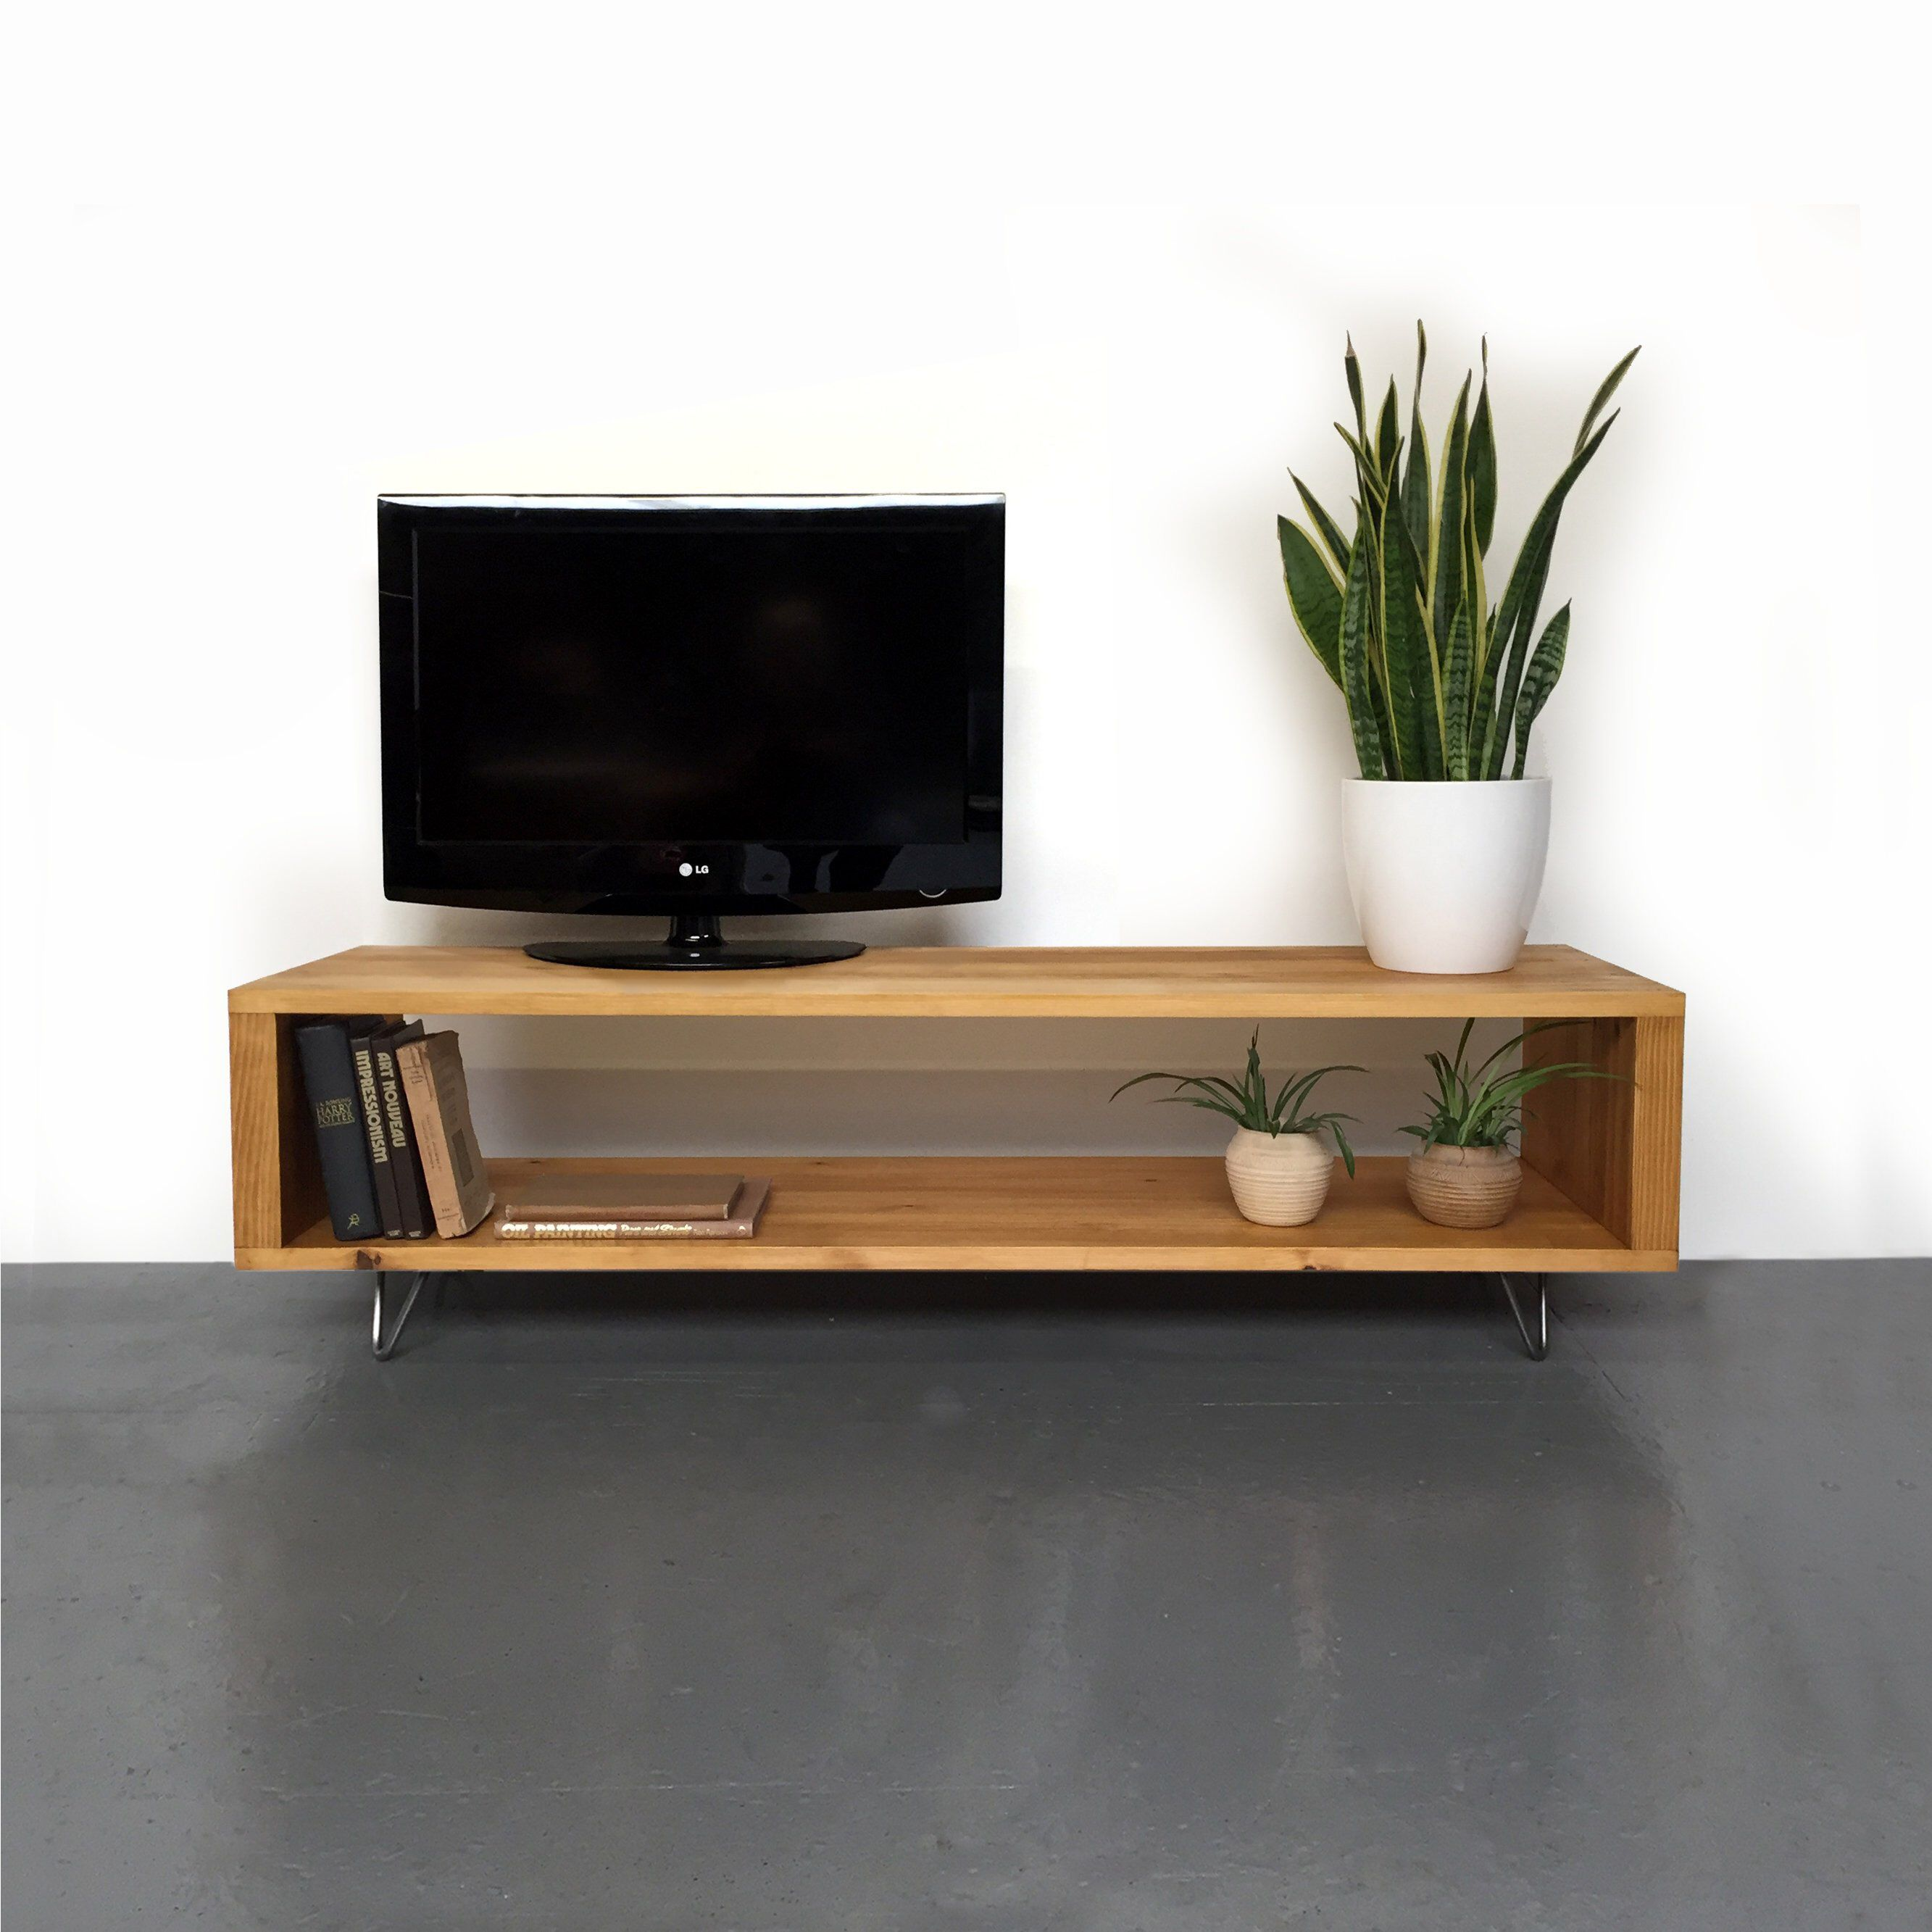 Low Solid Wood Large Tv Stand Coffee Table Media Unit On Mid Century Hairpin Legs Large And Medium Tv Stand And Coffee Table Large Tv Stands Tv Stand Designs [ 2666 x 2666 Pixel ]